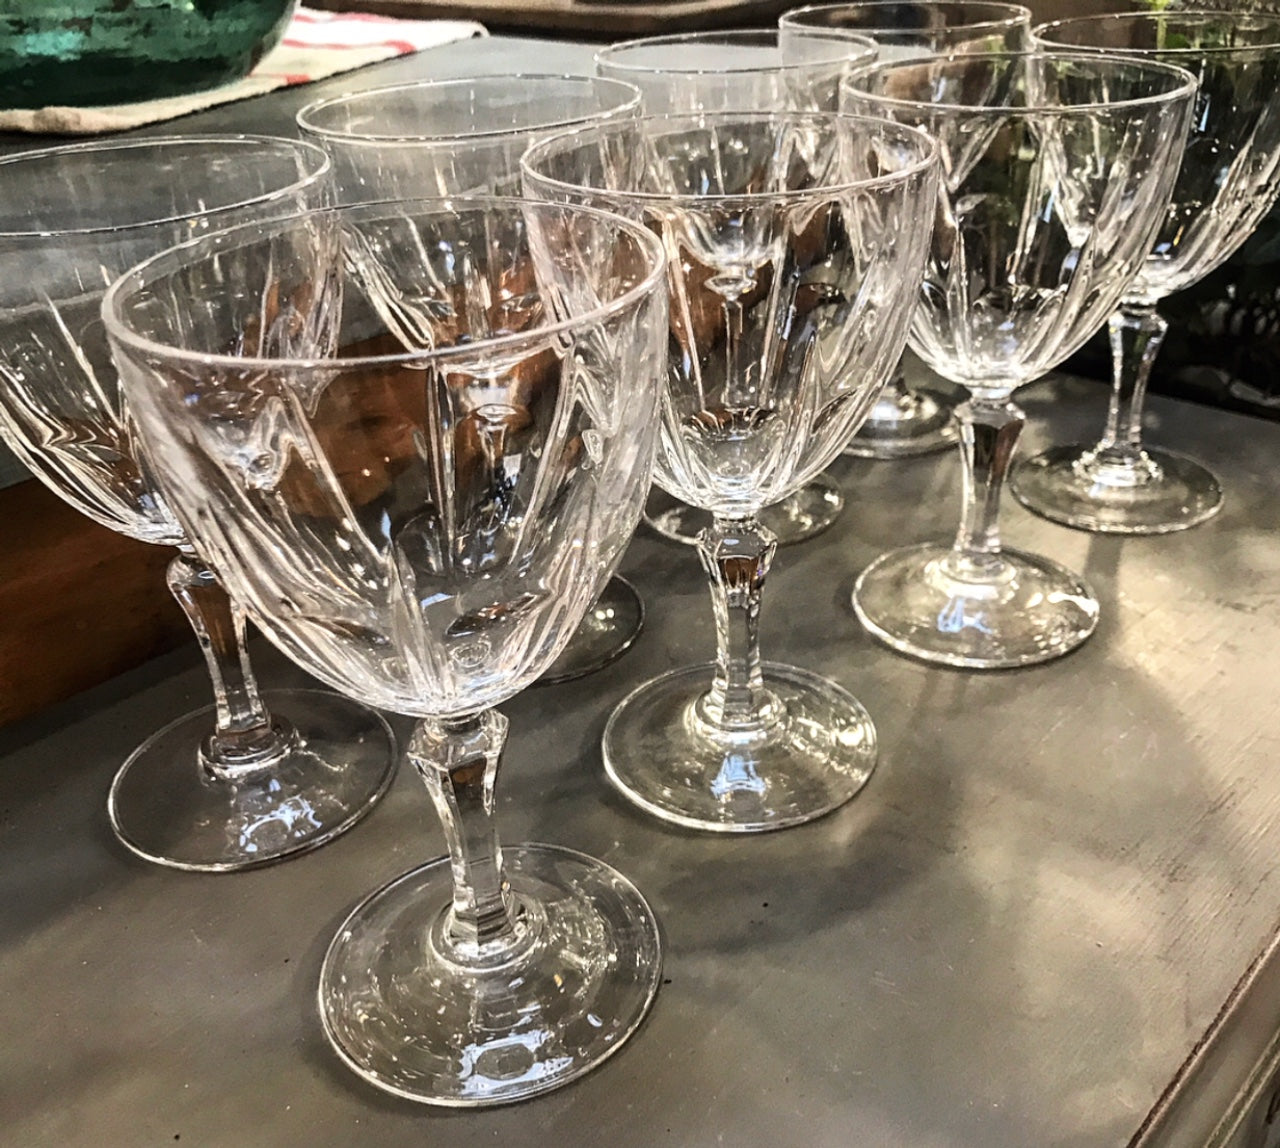 Late 19th century French Crystal Glasses